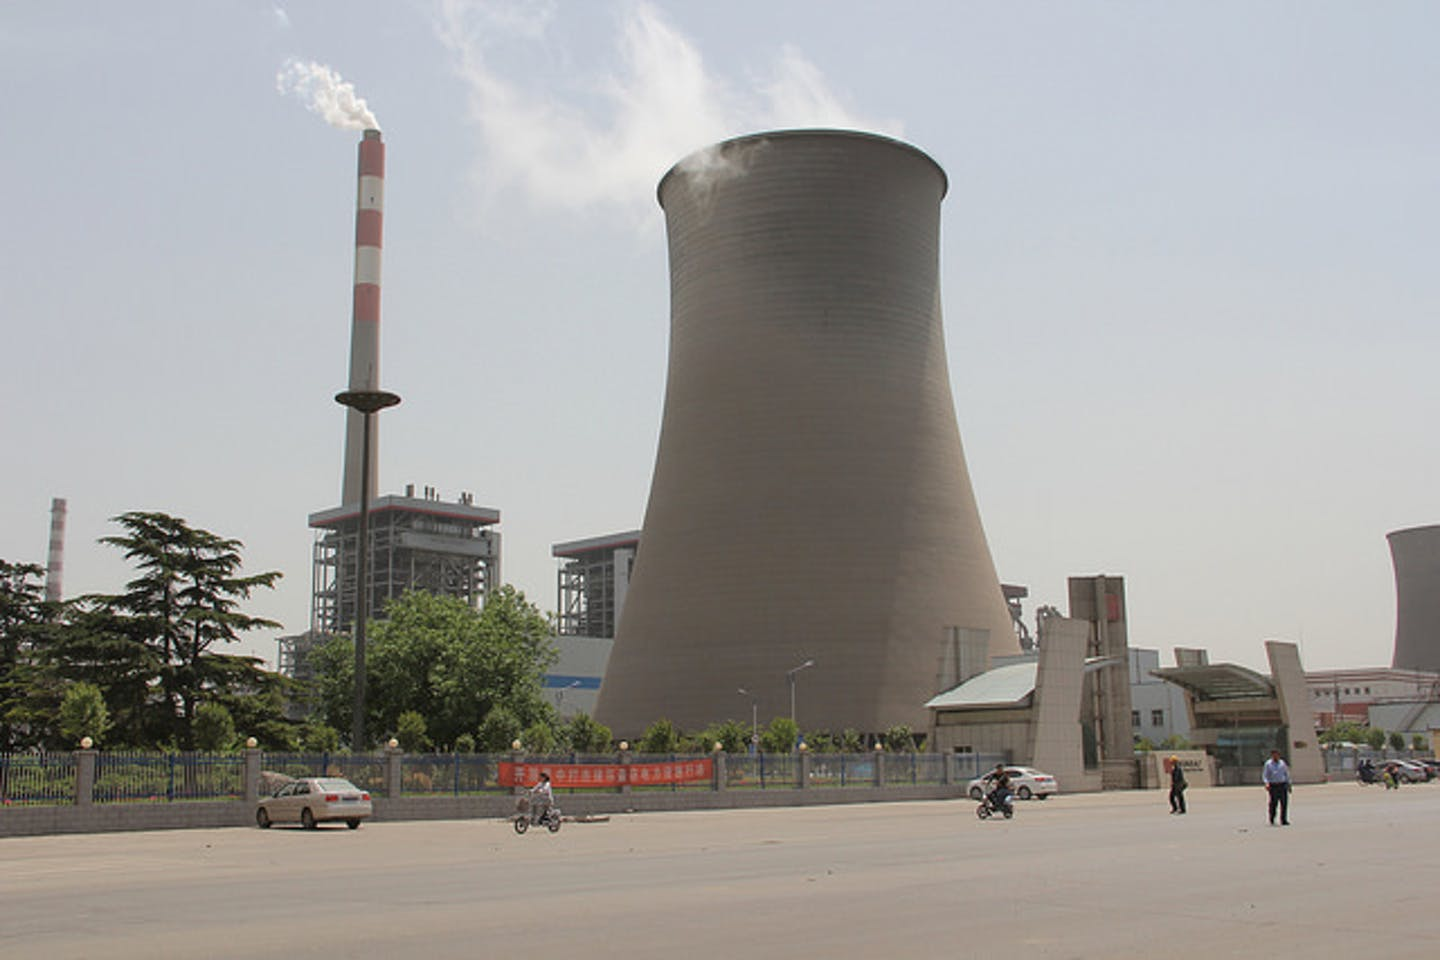 Coal-fired power plant in Henan, China